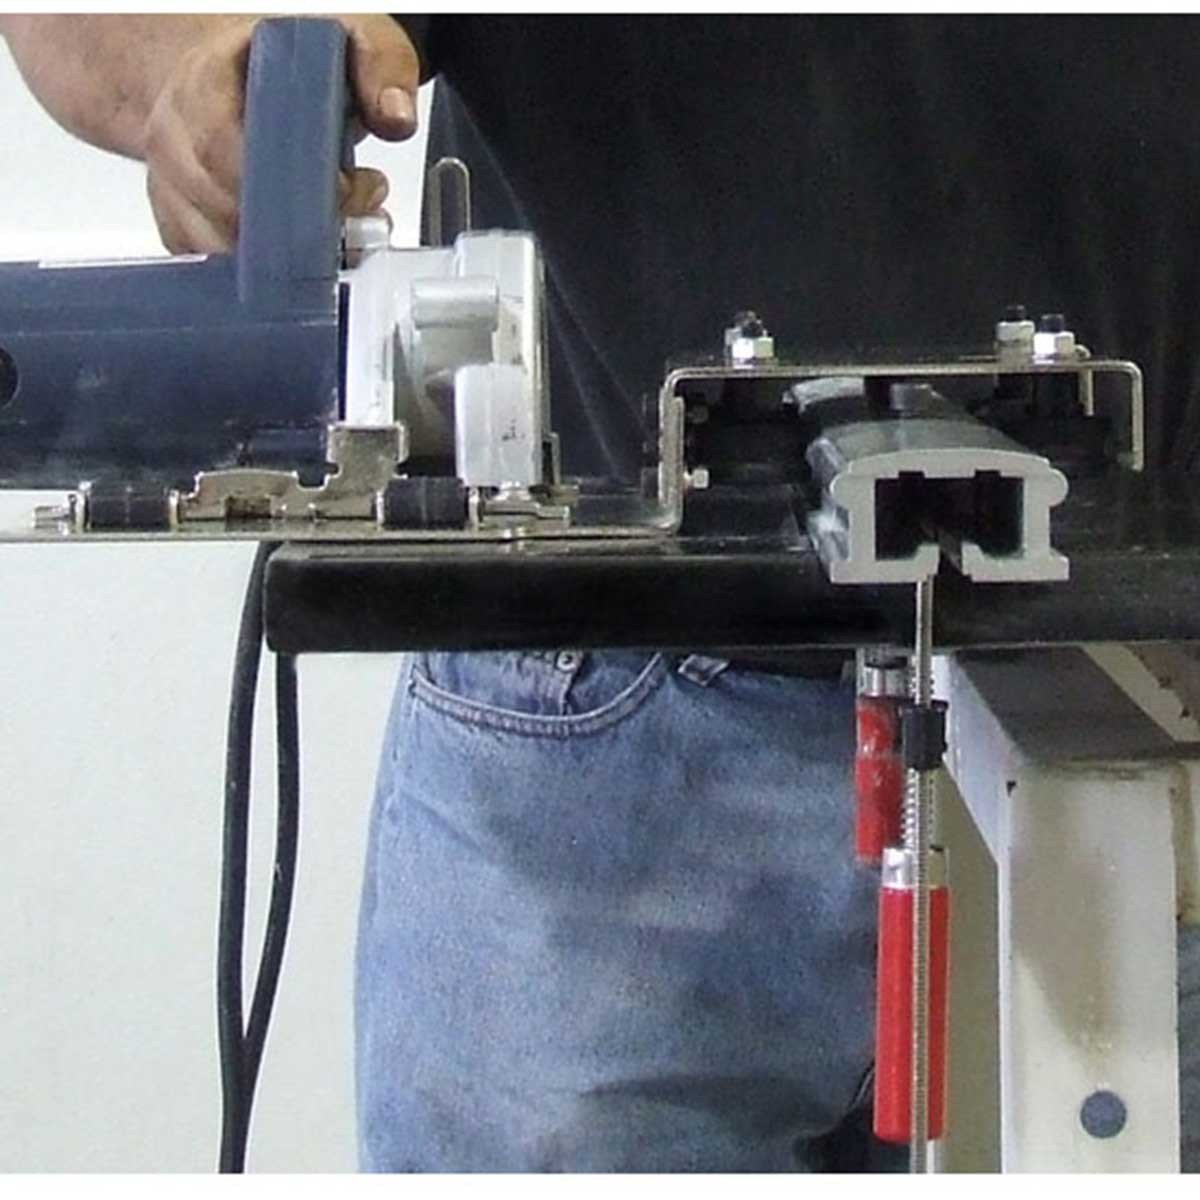 AWS-125 hand-held saw rail cutting countertops